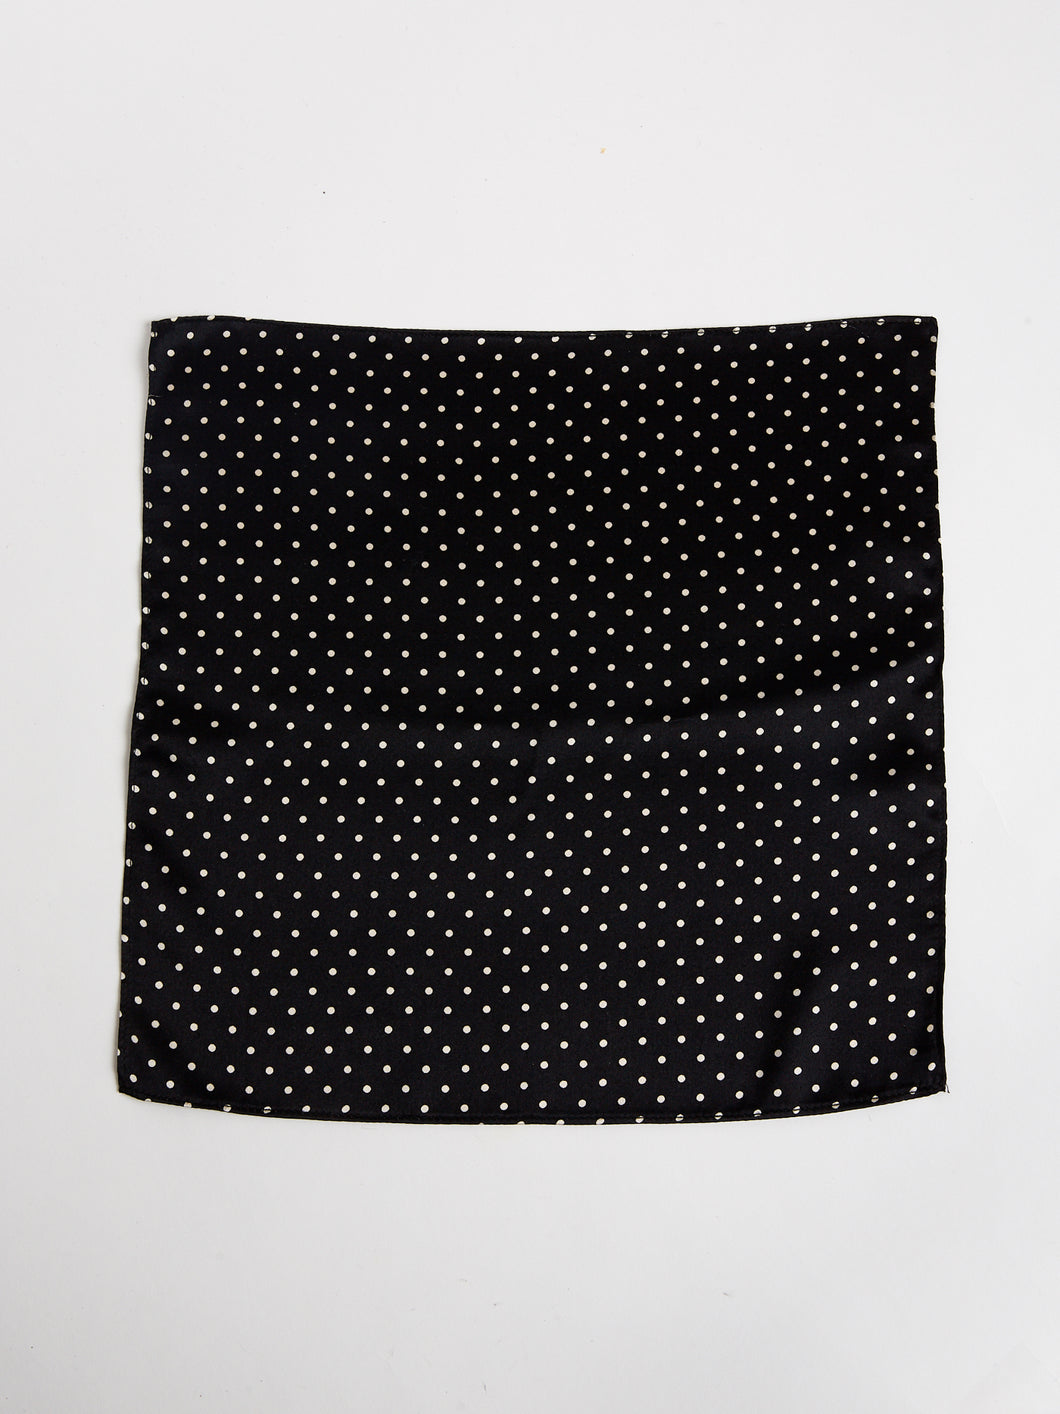 The Arc Petite Scarf in Black and White Microdot